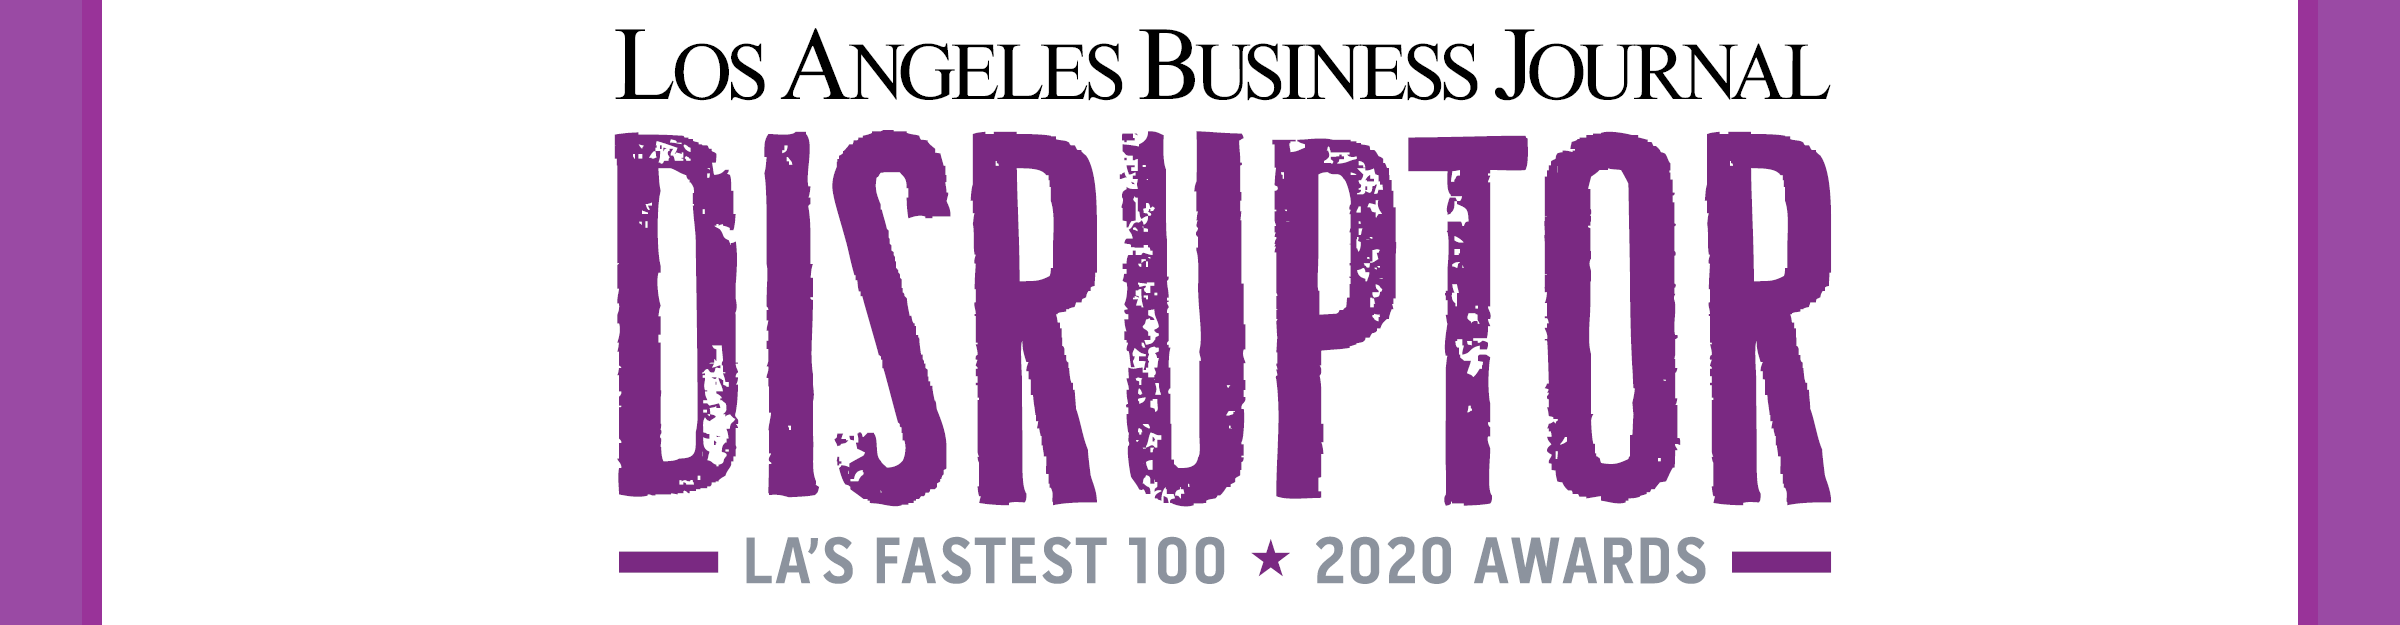 Los Angeles Business Journal Disruptor Awards Event Banner